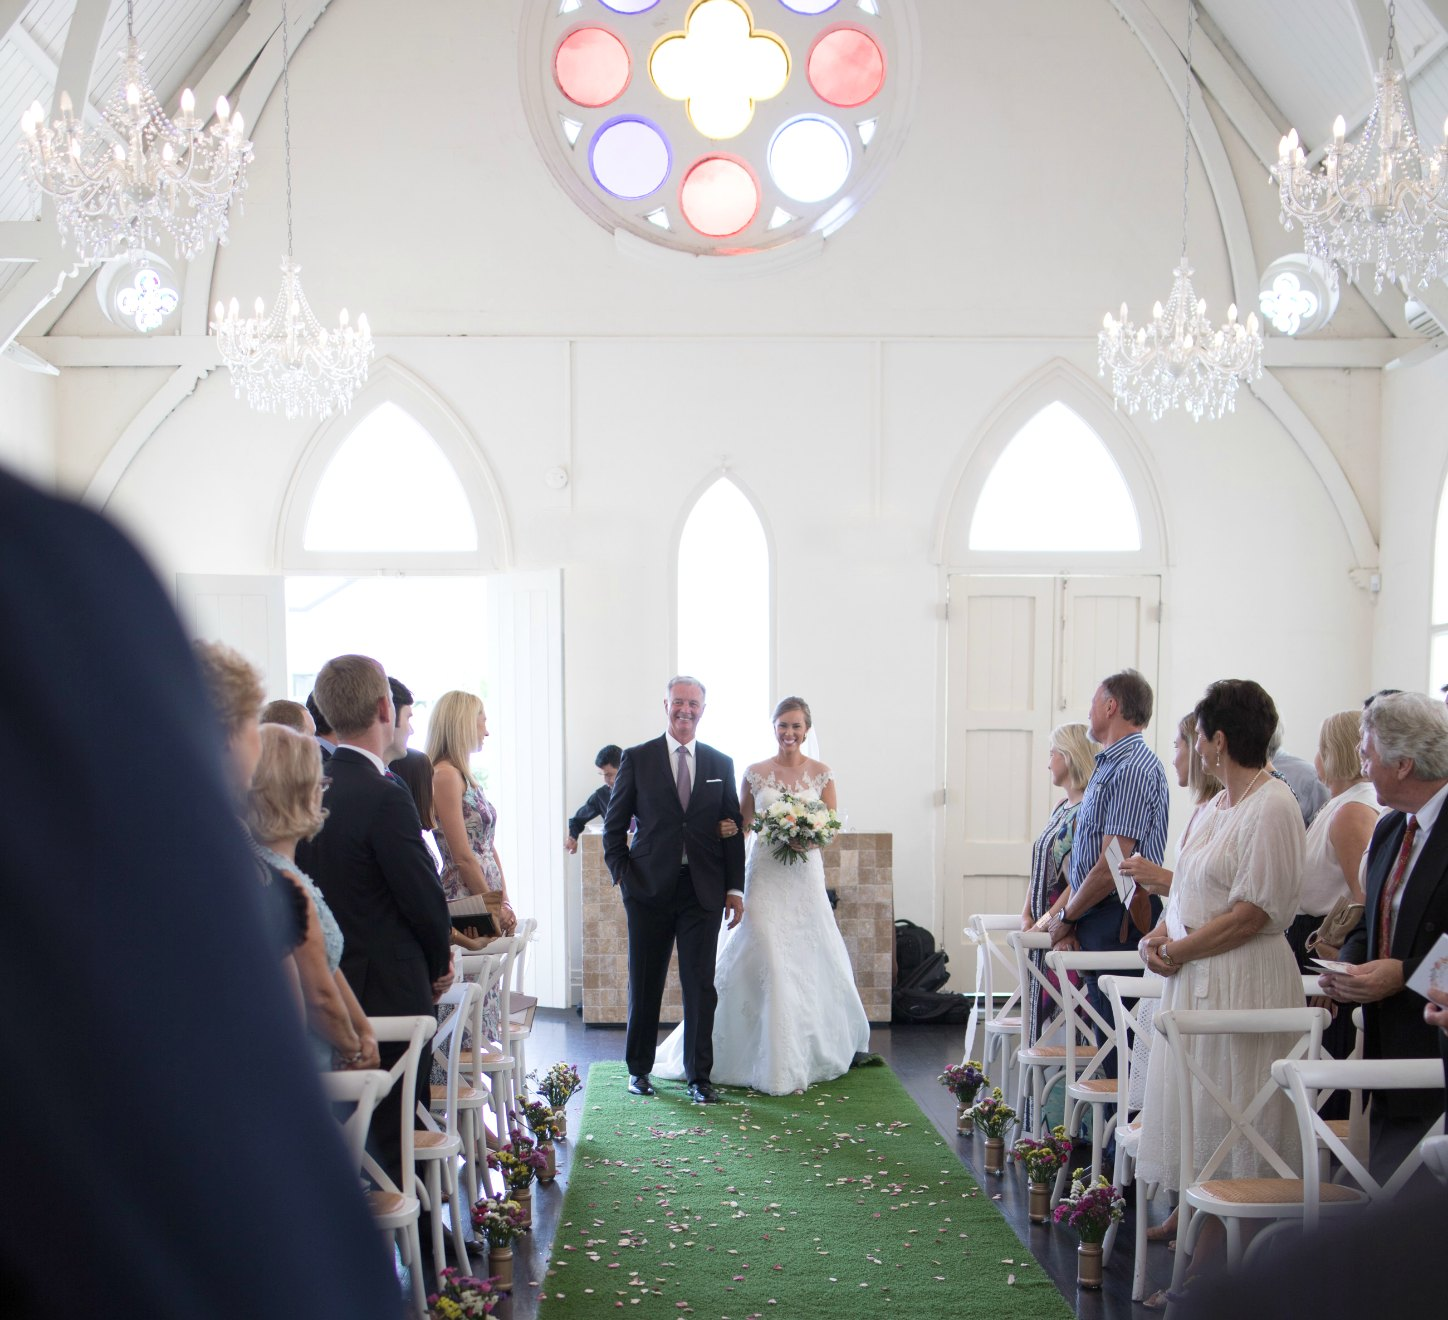 father-of-the-bride-walking-down-the-aisle-wedding-photo-high-church-brisbane-pretty-white-chapel